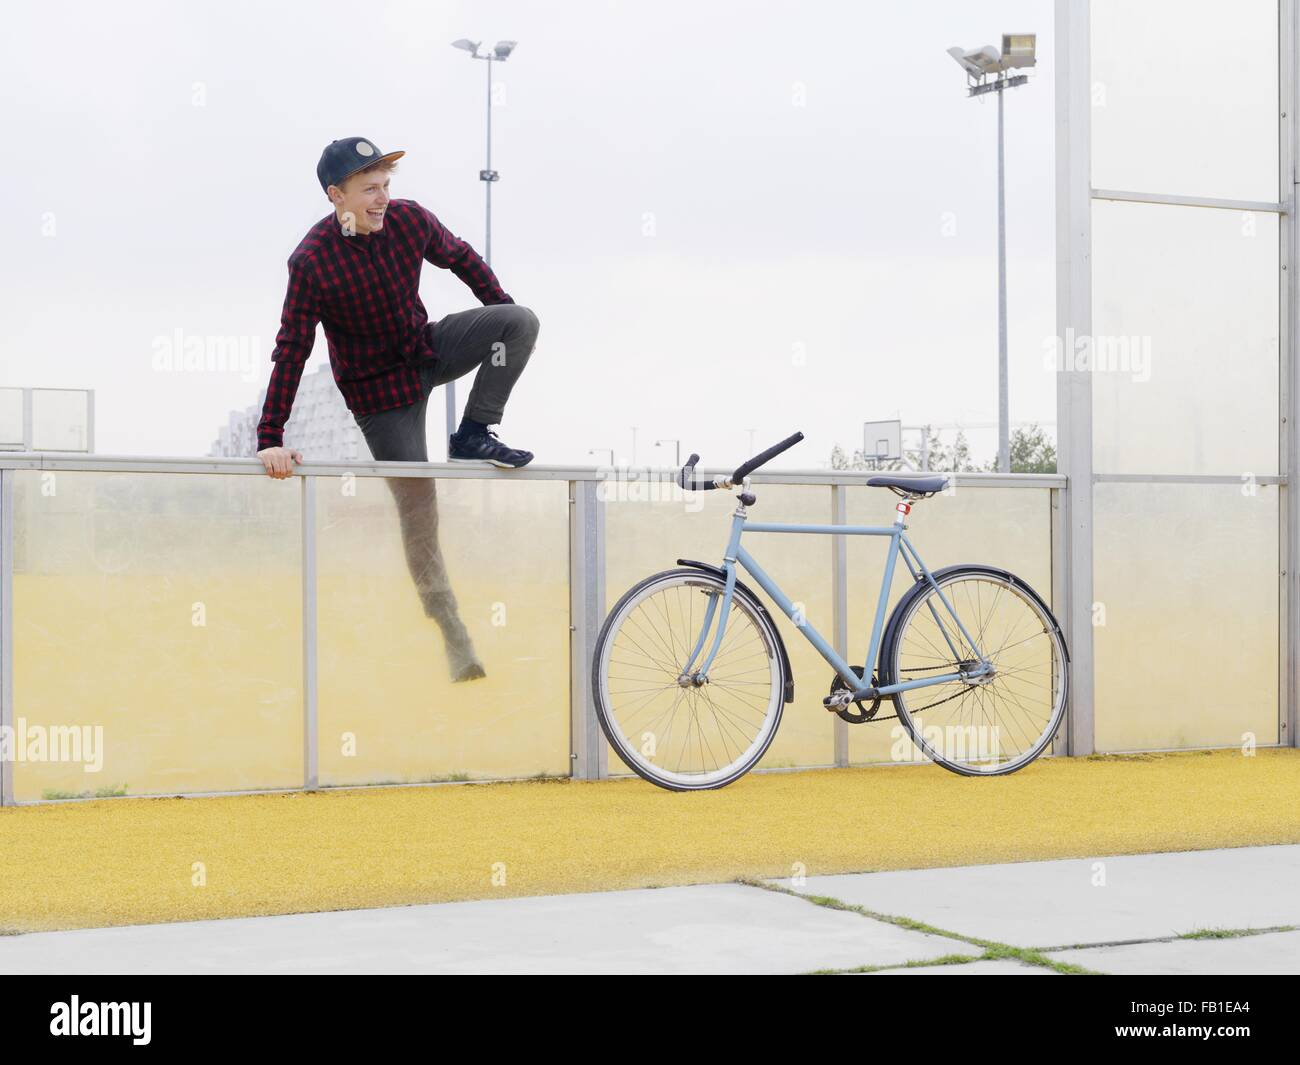 Urban cyclist climbing over fence on sports field - Stock Image